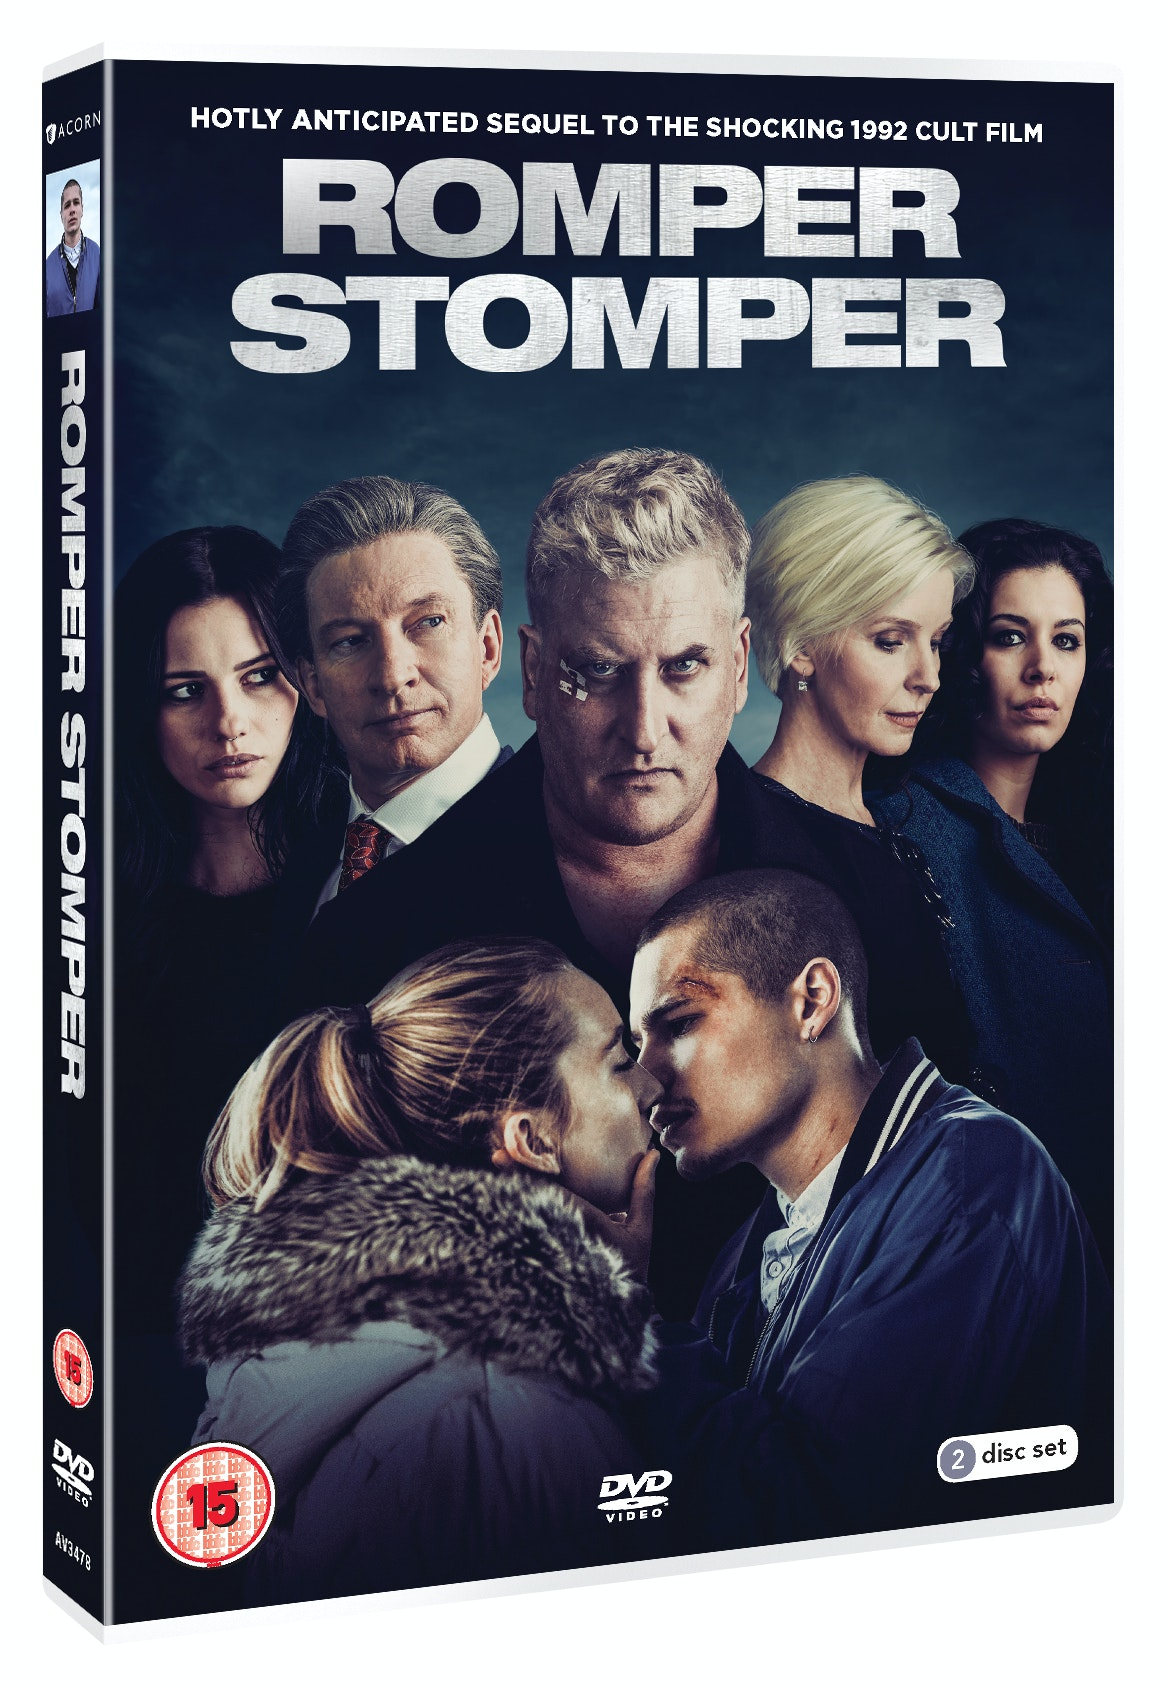 The romper stomper  sweepstakes